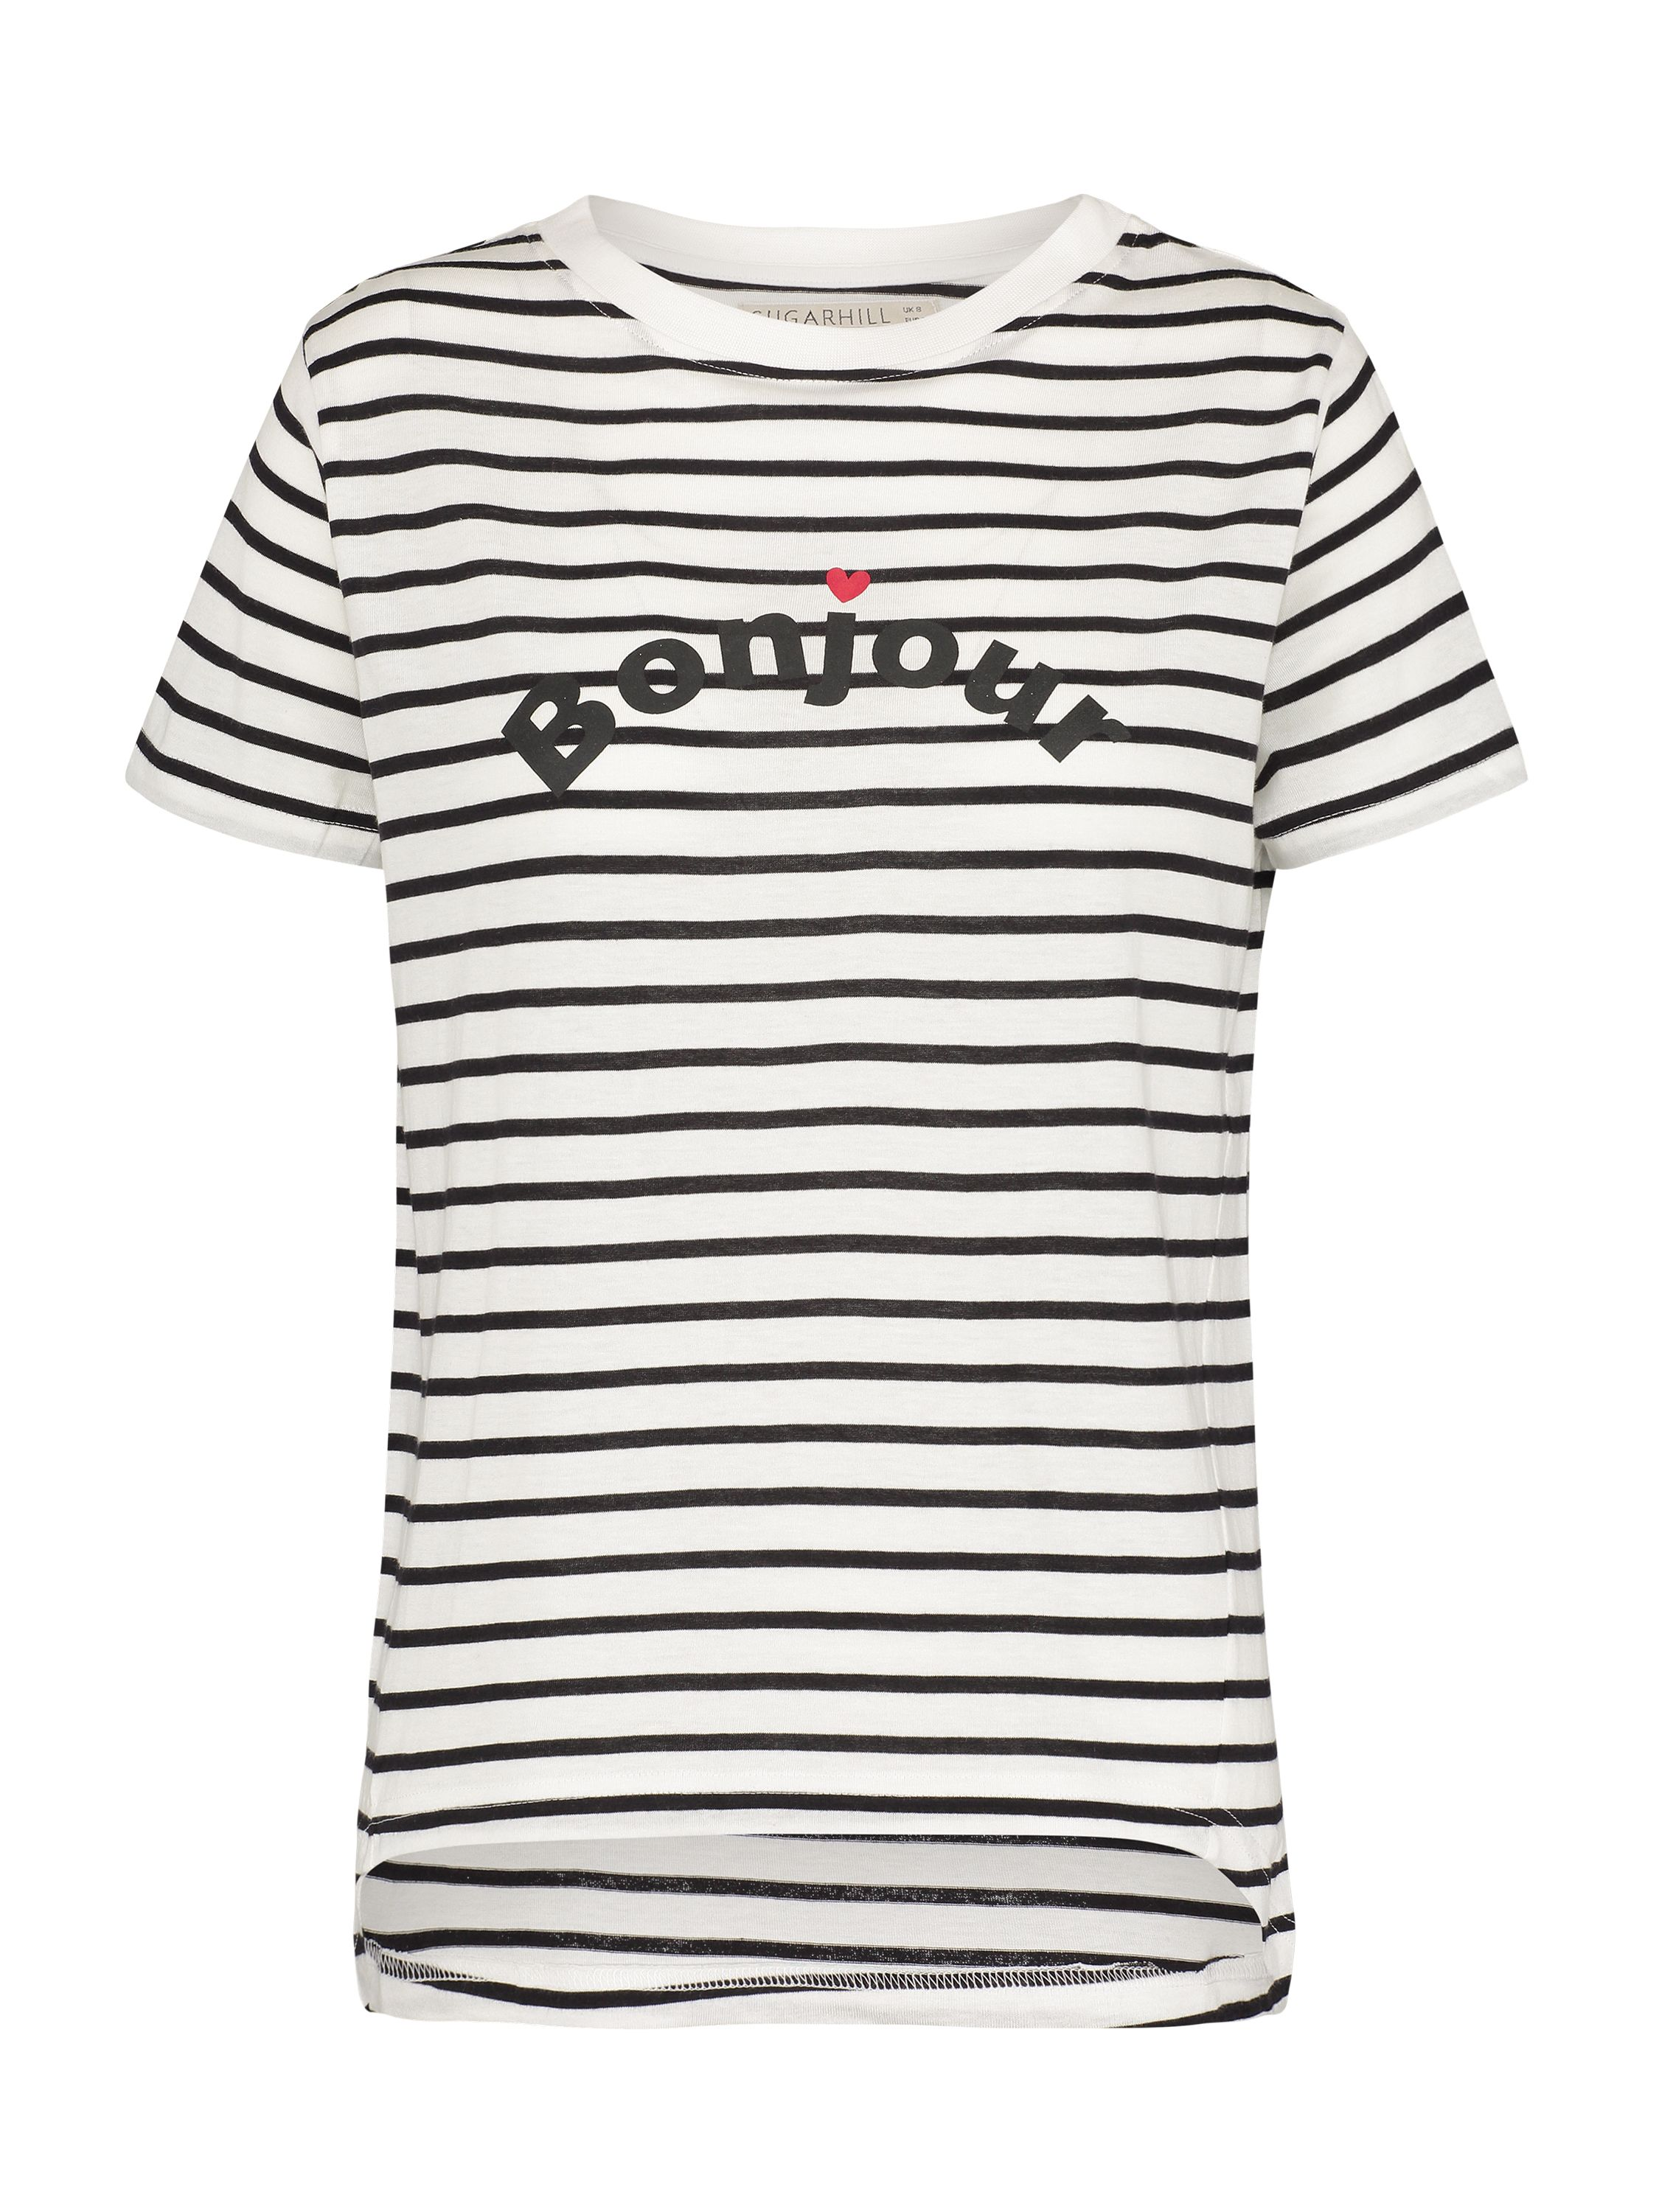 Sugarhill Boutique Mimi Bonjour T-Shirt, Black/White